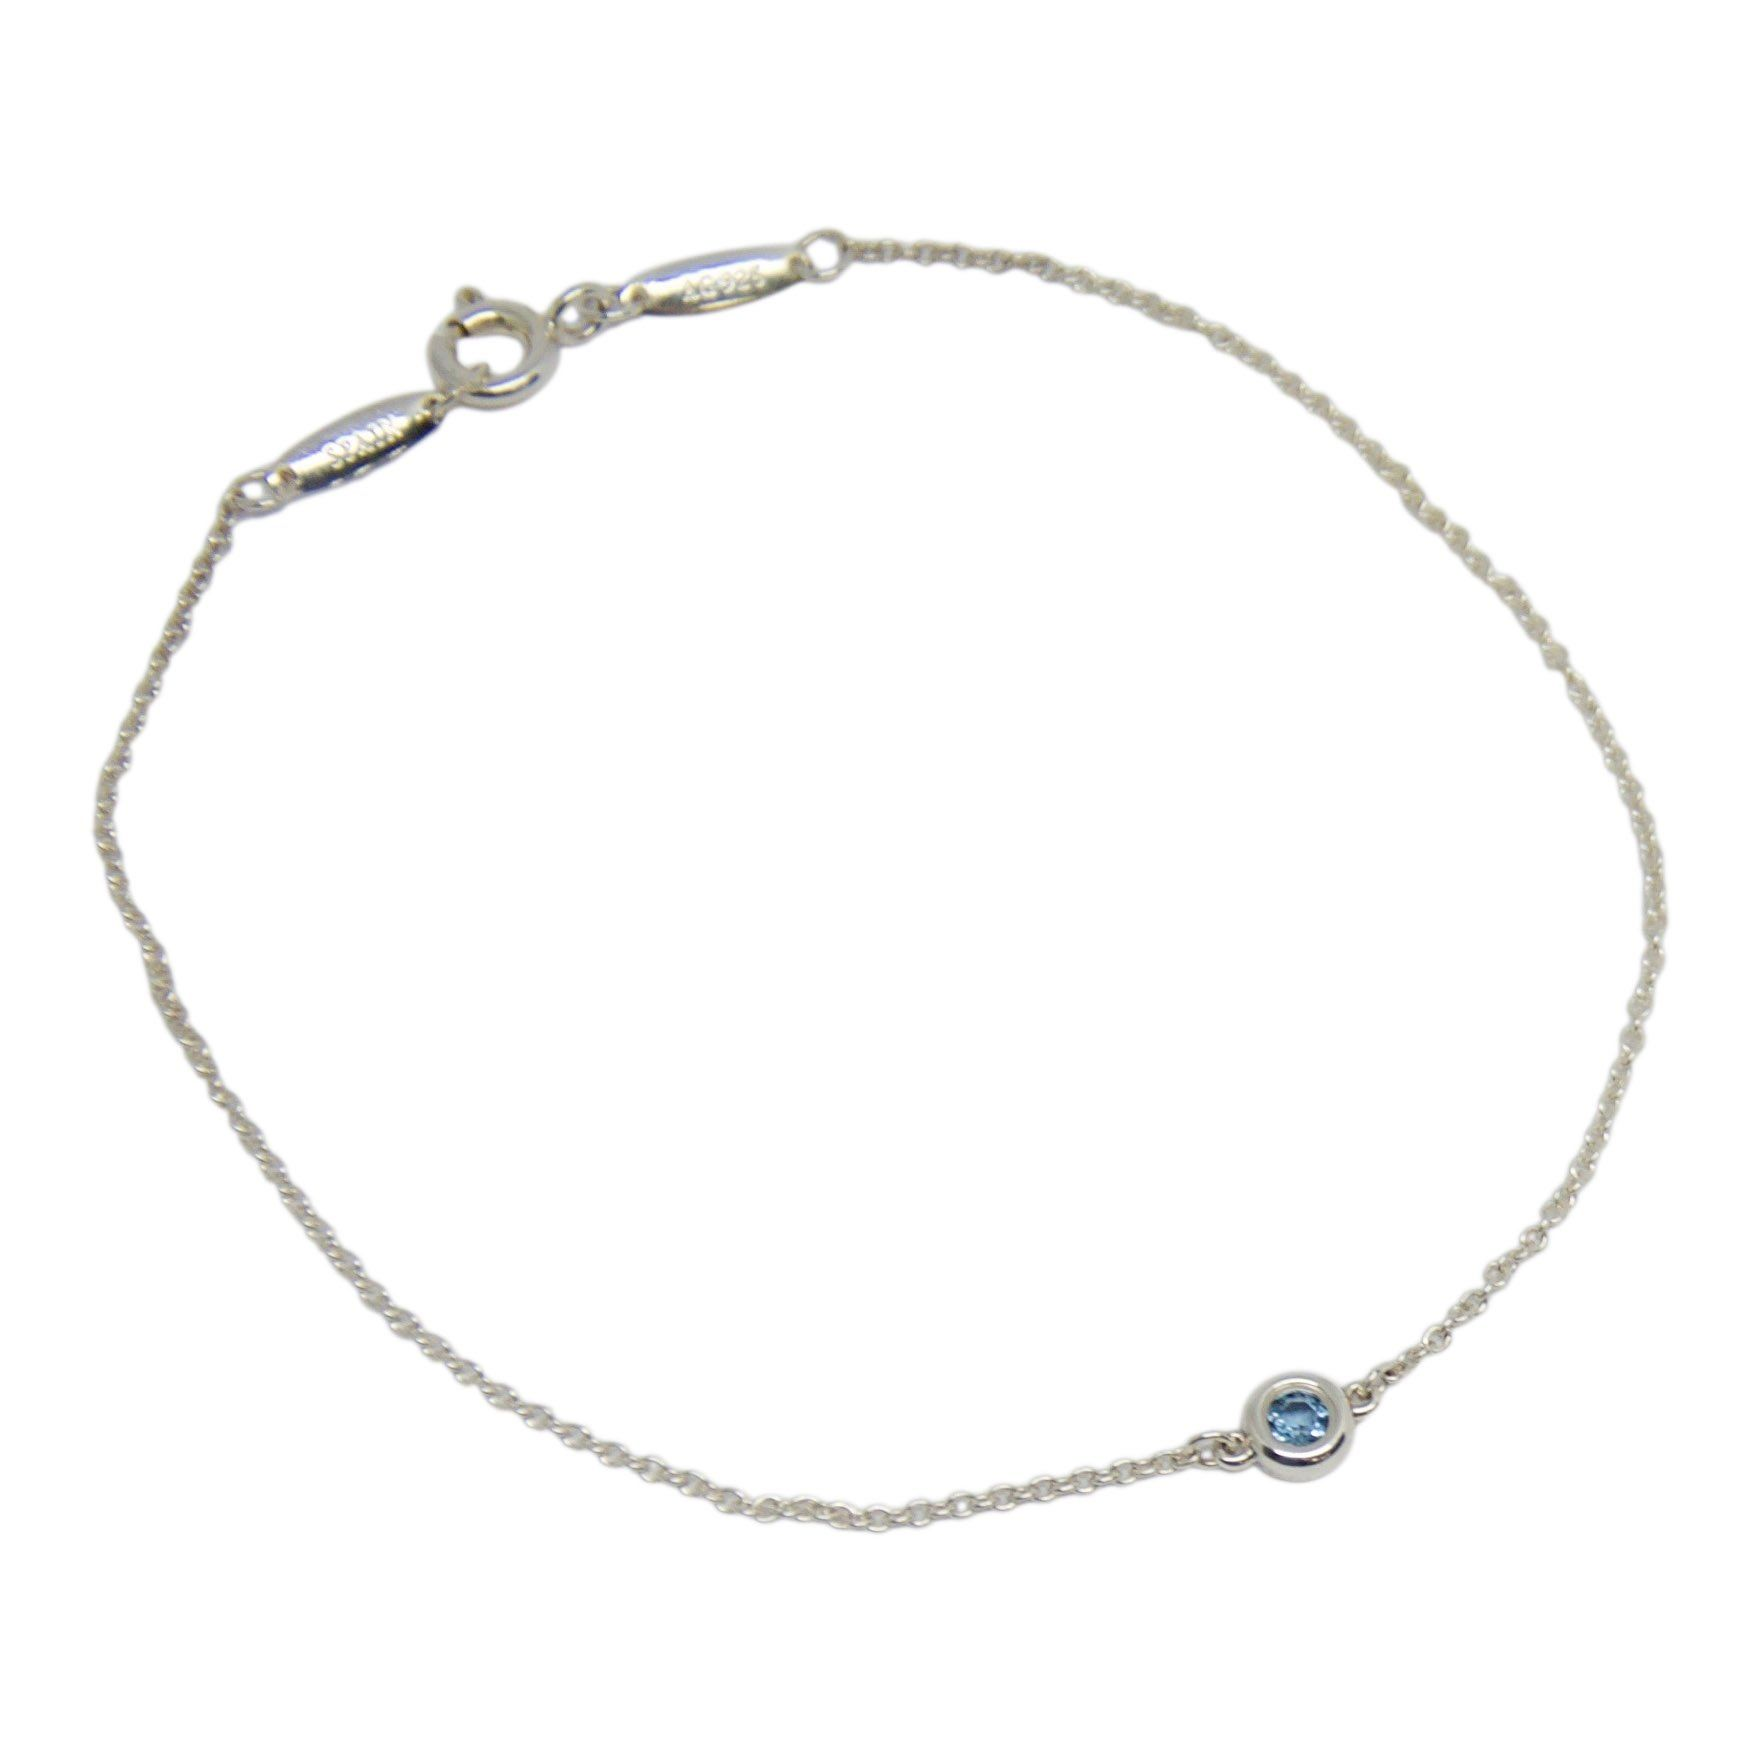 a43eef0c7 Elsa Peretti Color by the Yard Bracelet with Aquamarine Bracelets Tiffany  ...